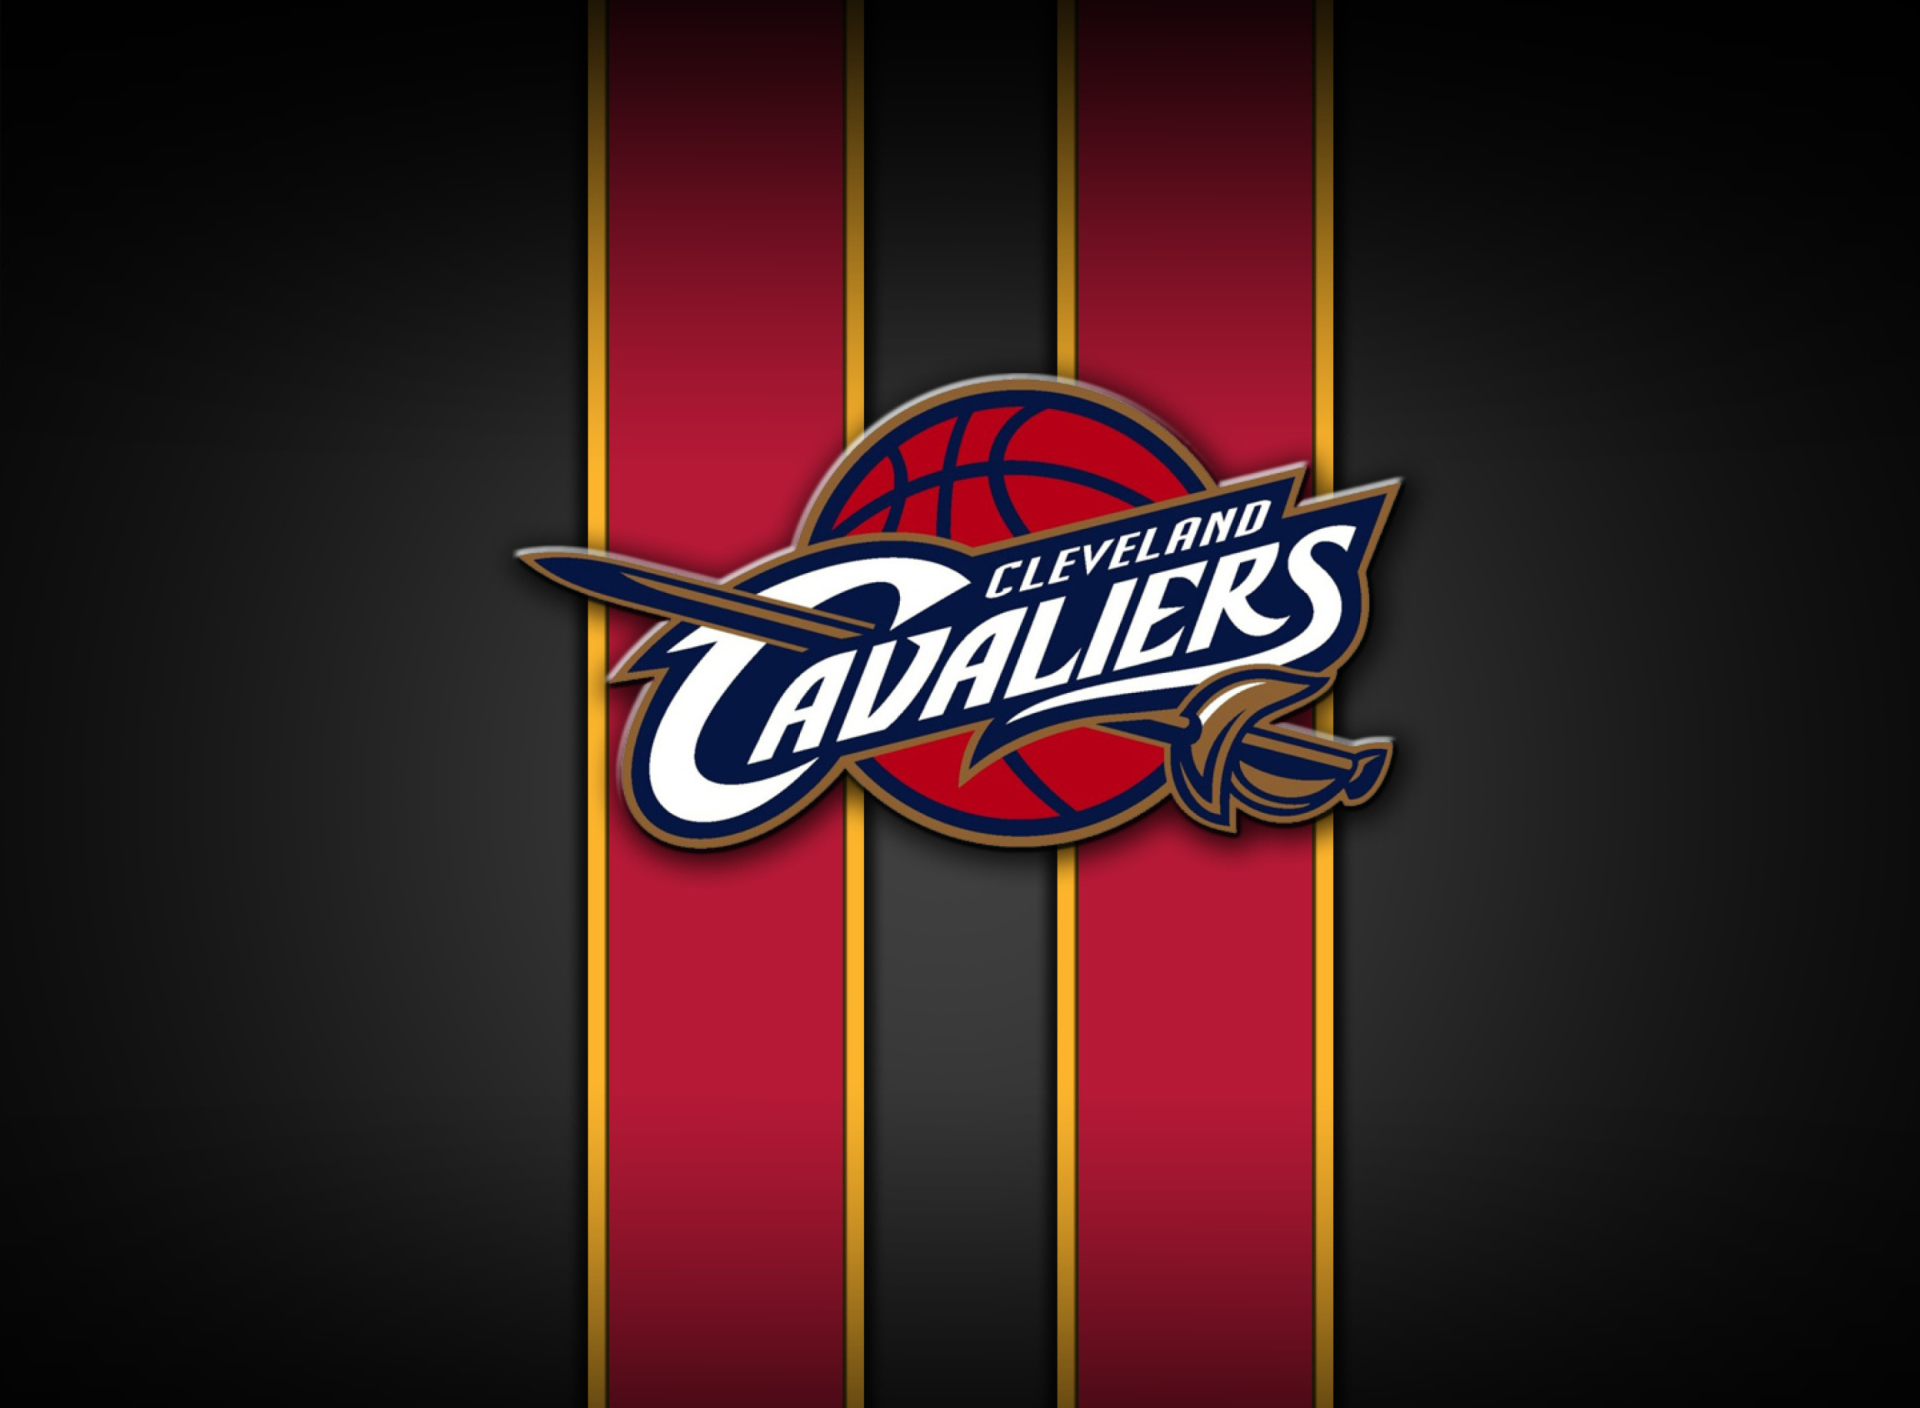 Colorado Avalanche Iphone Wallpaper Cleveland Cavaliers Logo Wallpapers Free Download